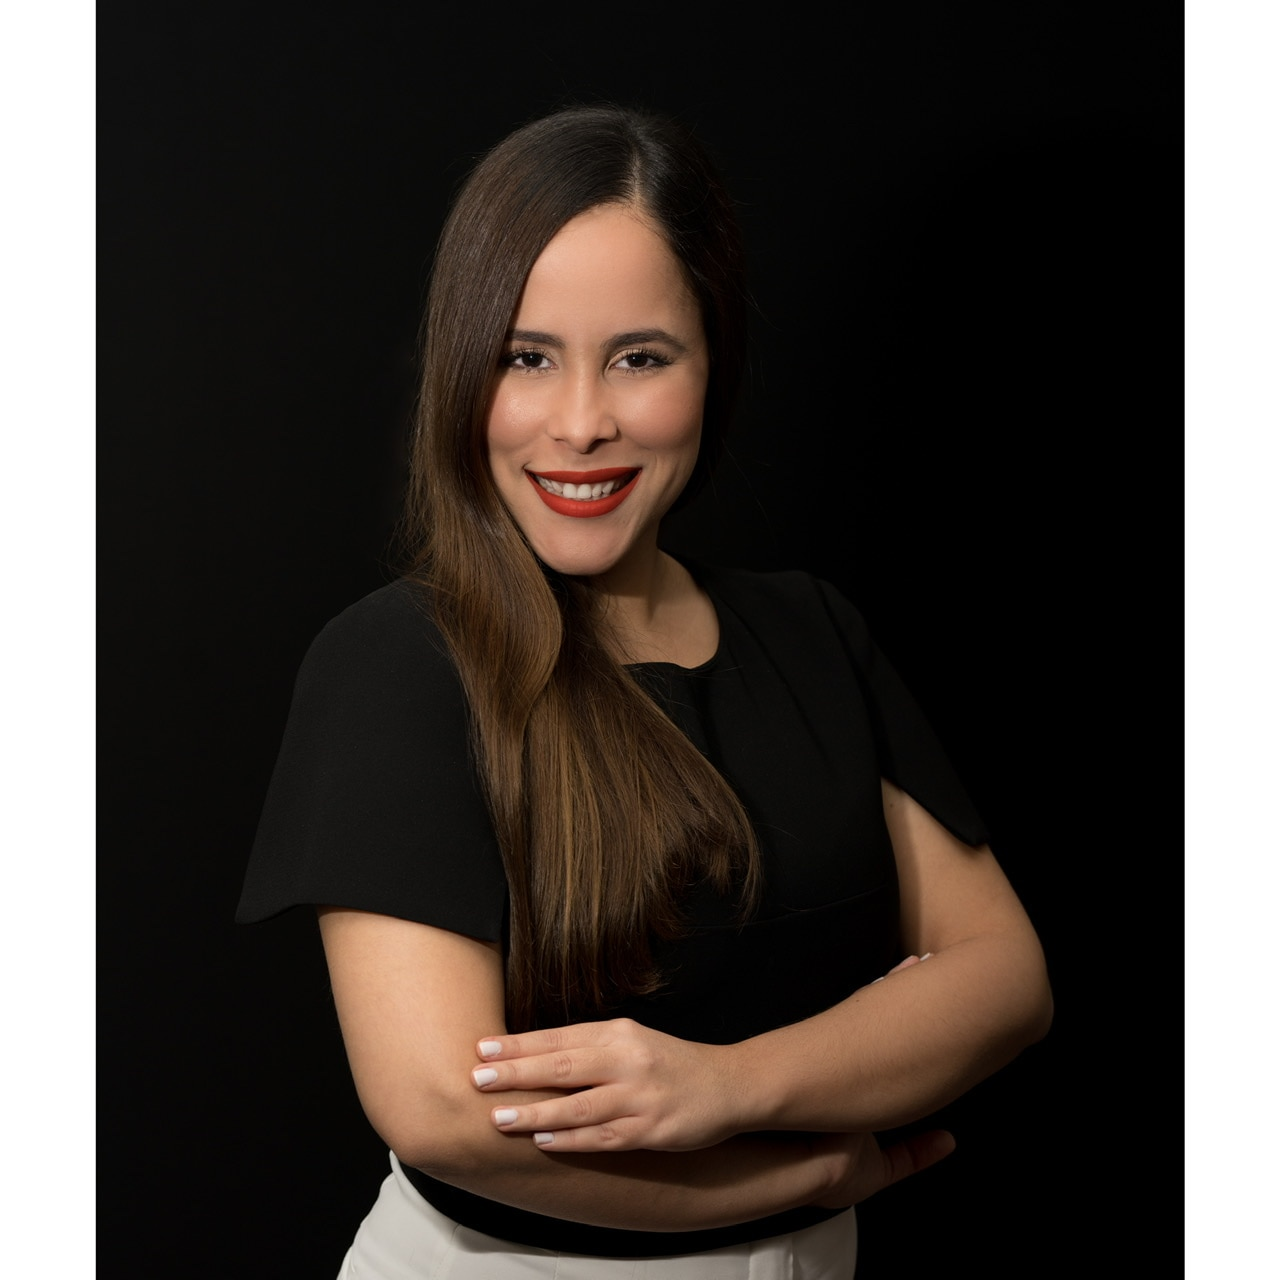 ANGELICA MICHELLE MONGE TEJADA  Your Financial Professional & Insurance Agent